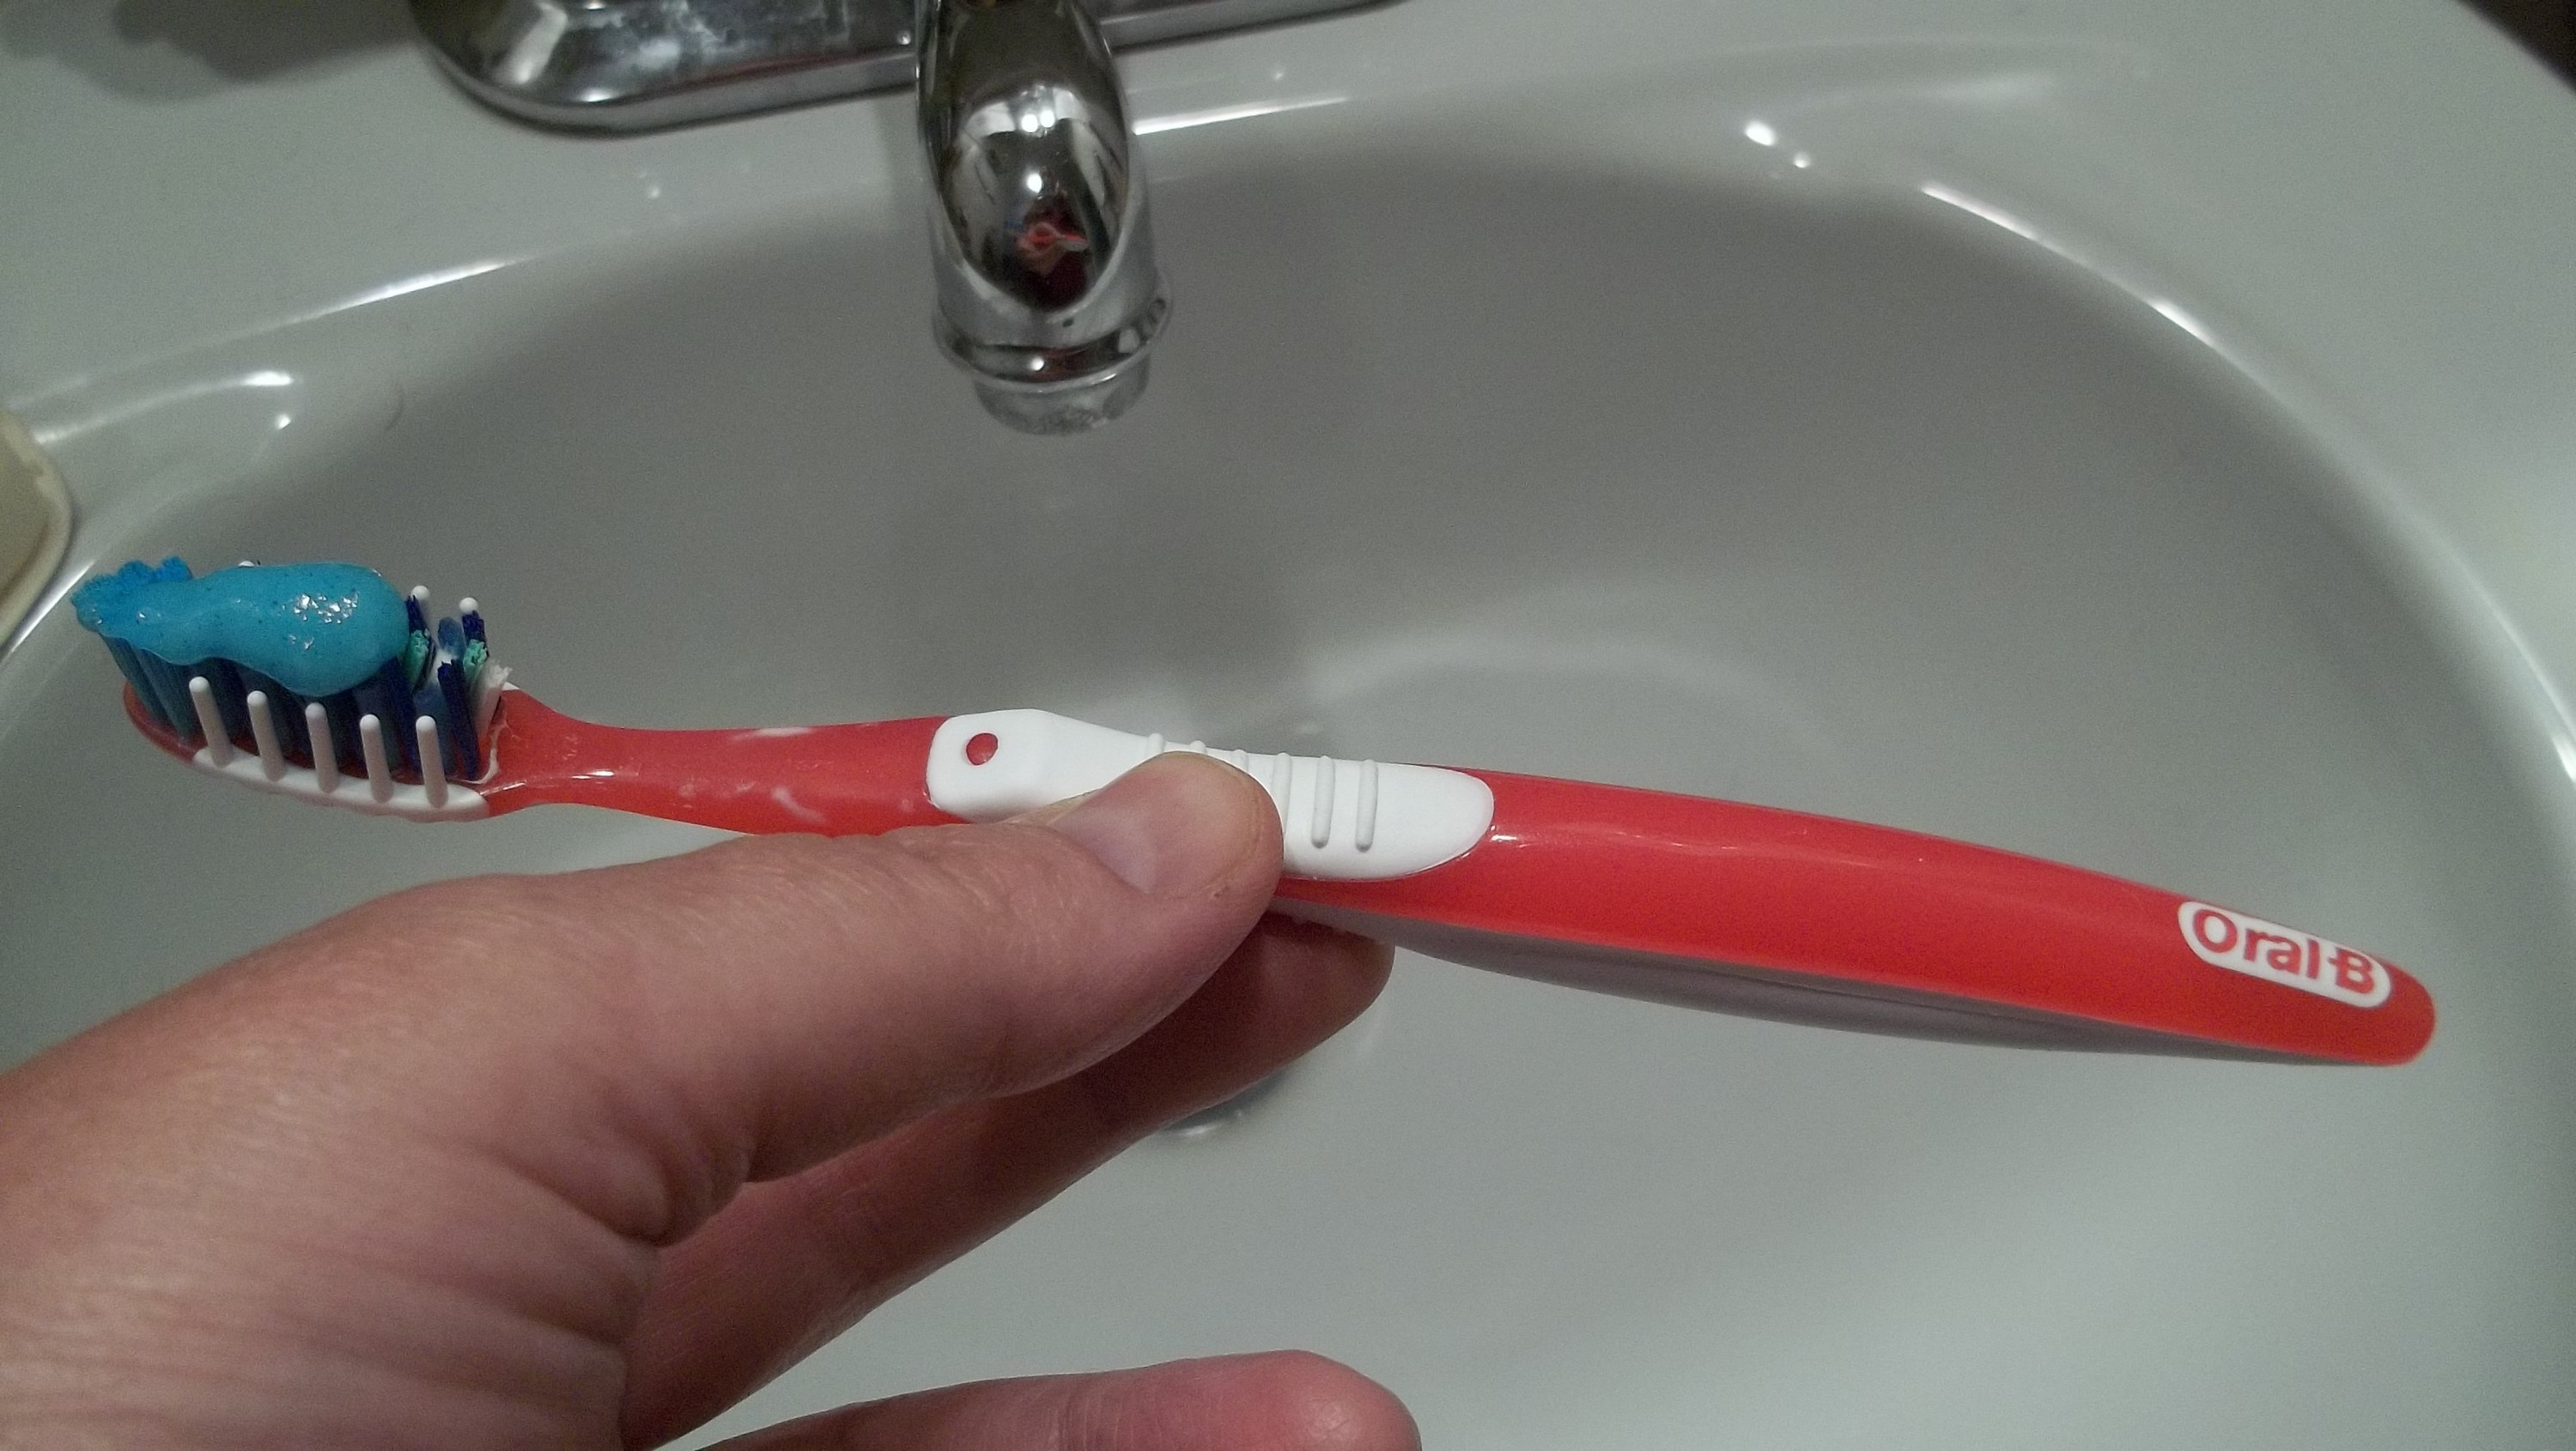 Oral B Crossaction Pro Health Toothbrush Reviews In